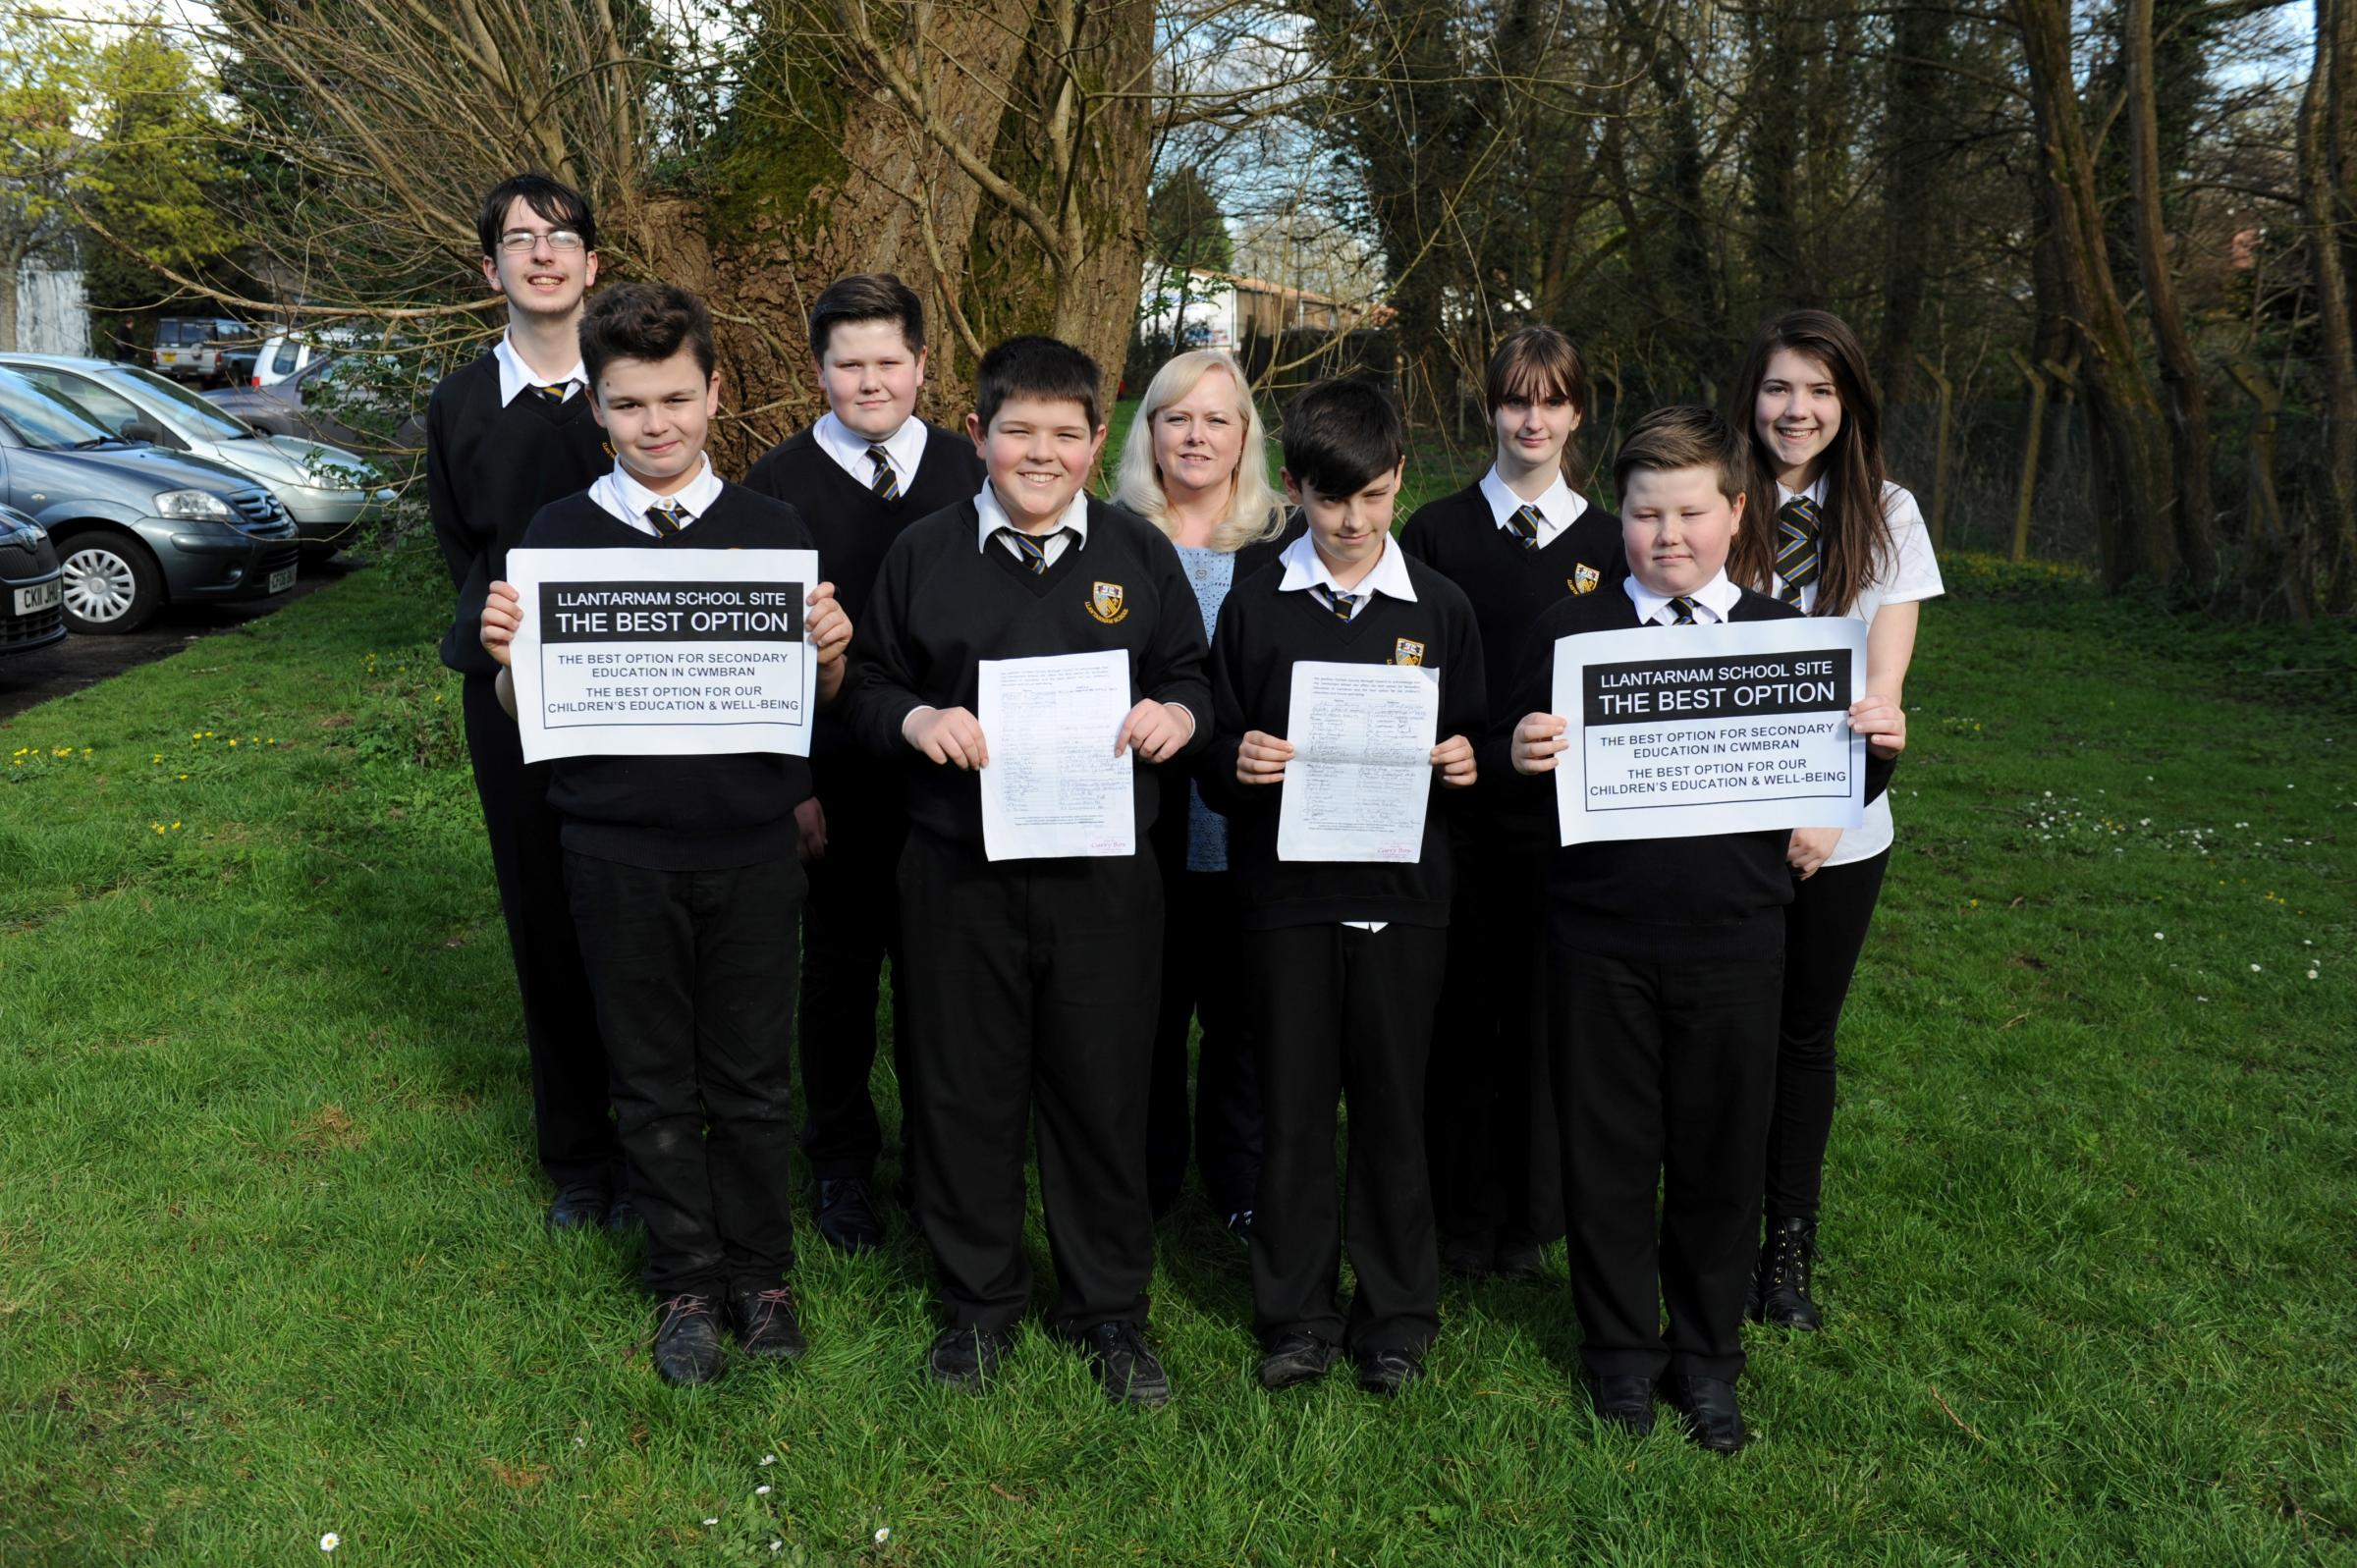 Over 4,000 sign petition to save Llantarnam School